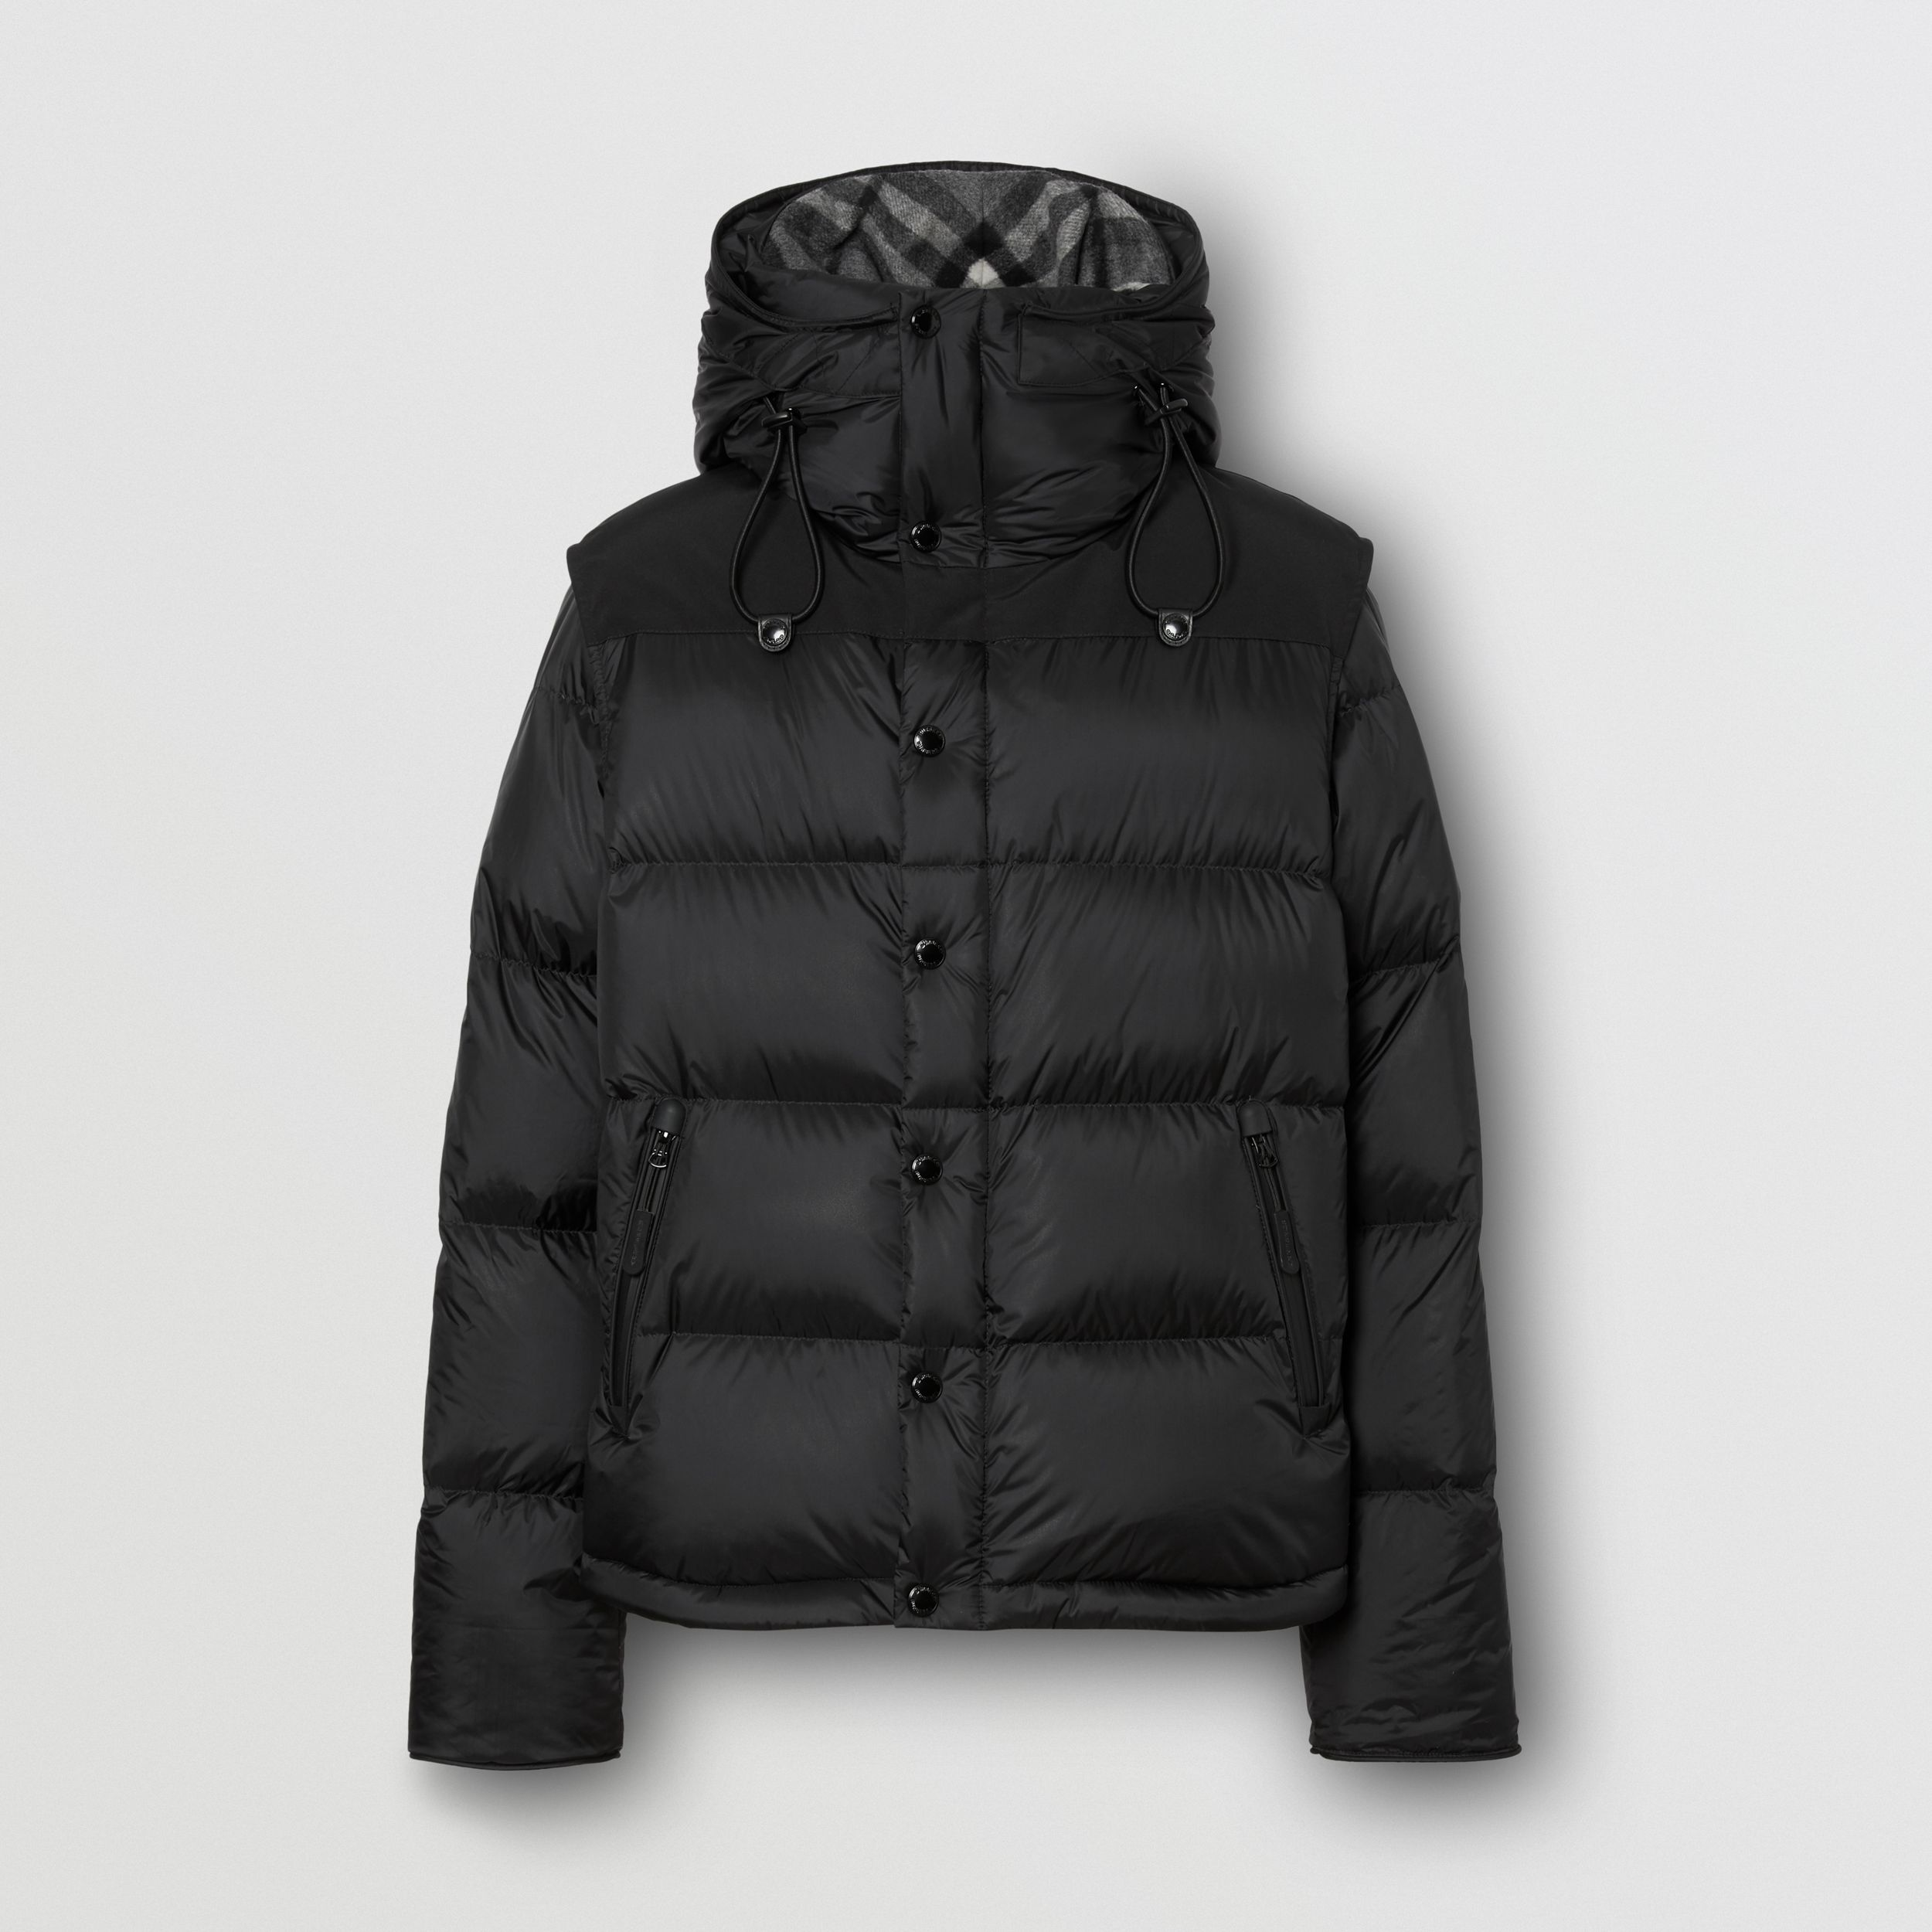 Detachable Sleeve Hooded Puffer Jacket in Black - Men | Burberry - 4